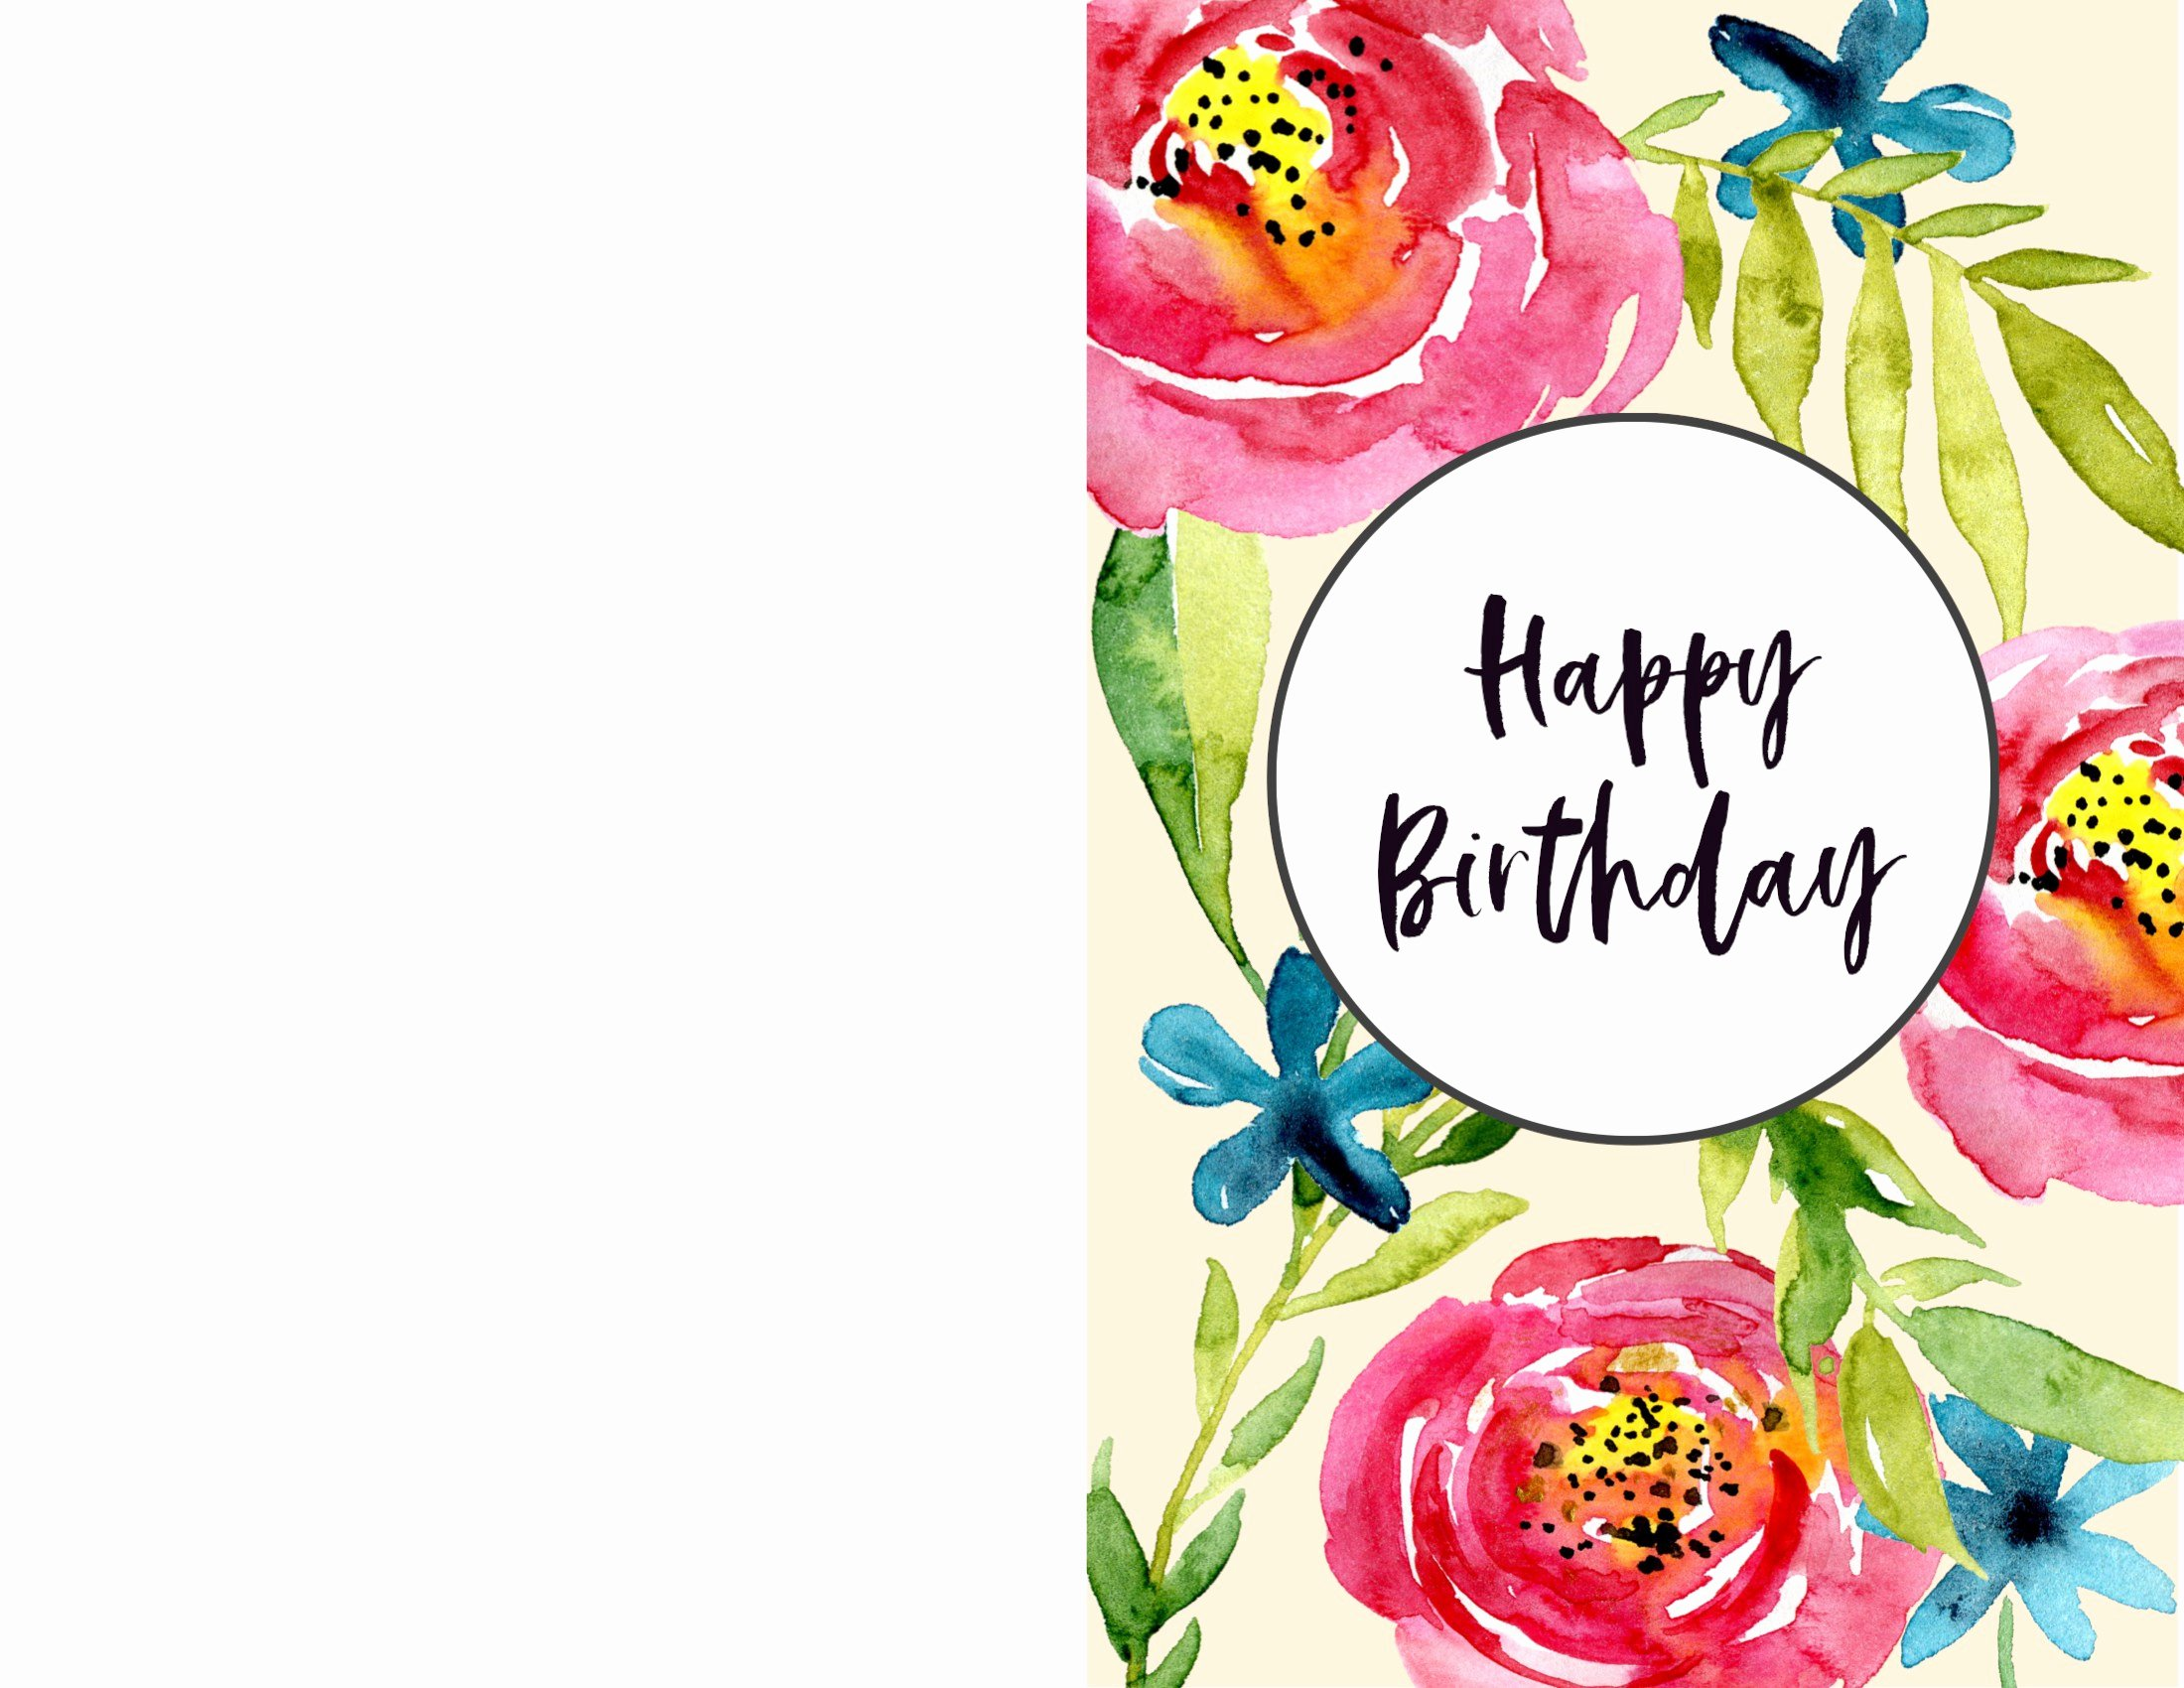 Birthday Card Template Free Lovely Free Printable Birthday Cards Paper Trail Design